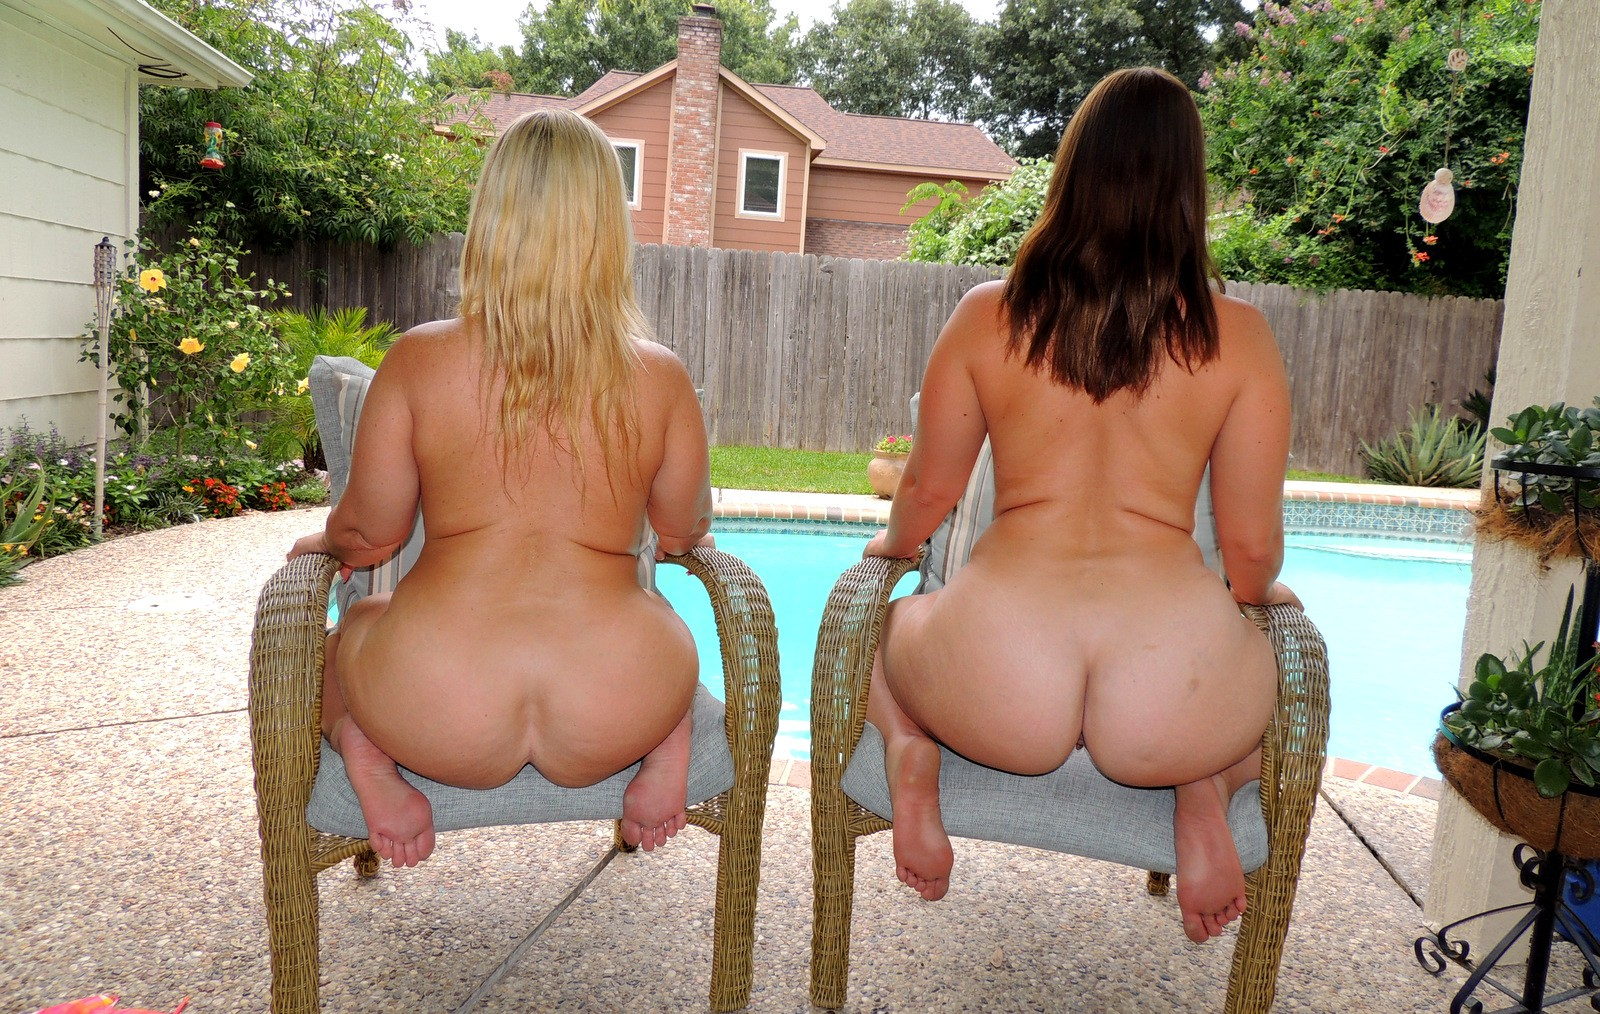 Naughty fun with two chubby girls 10